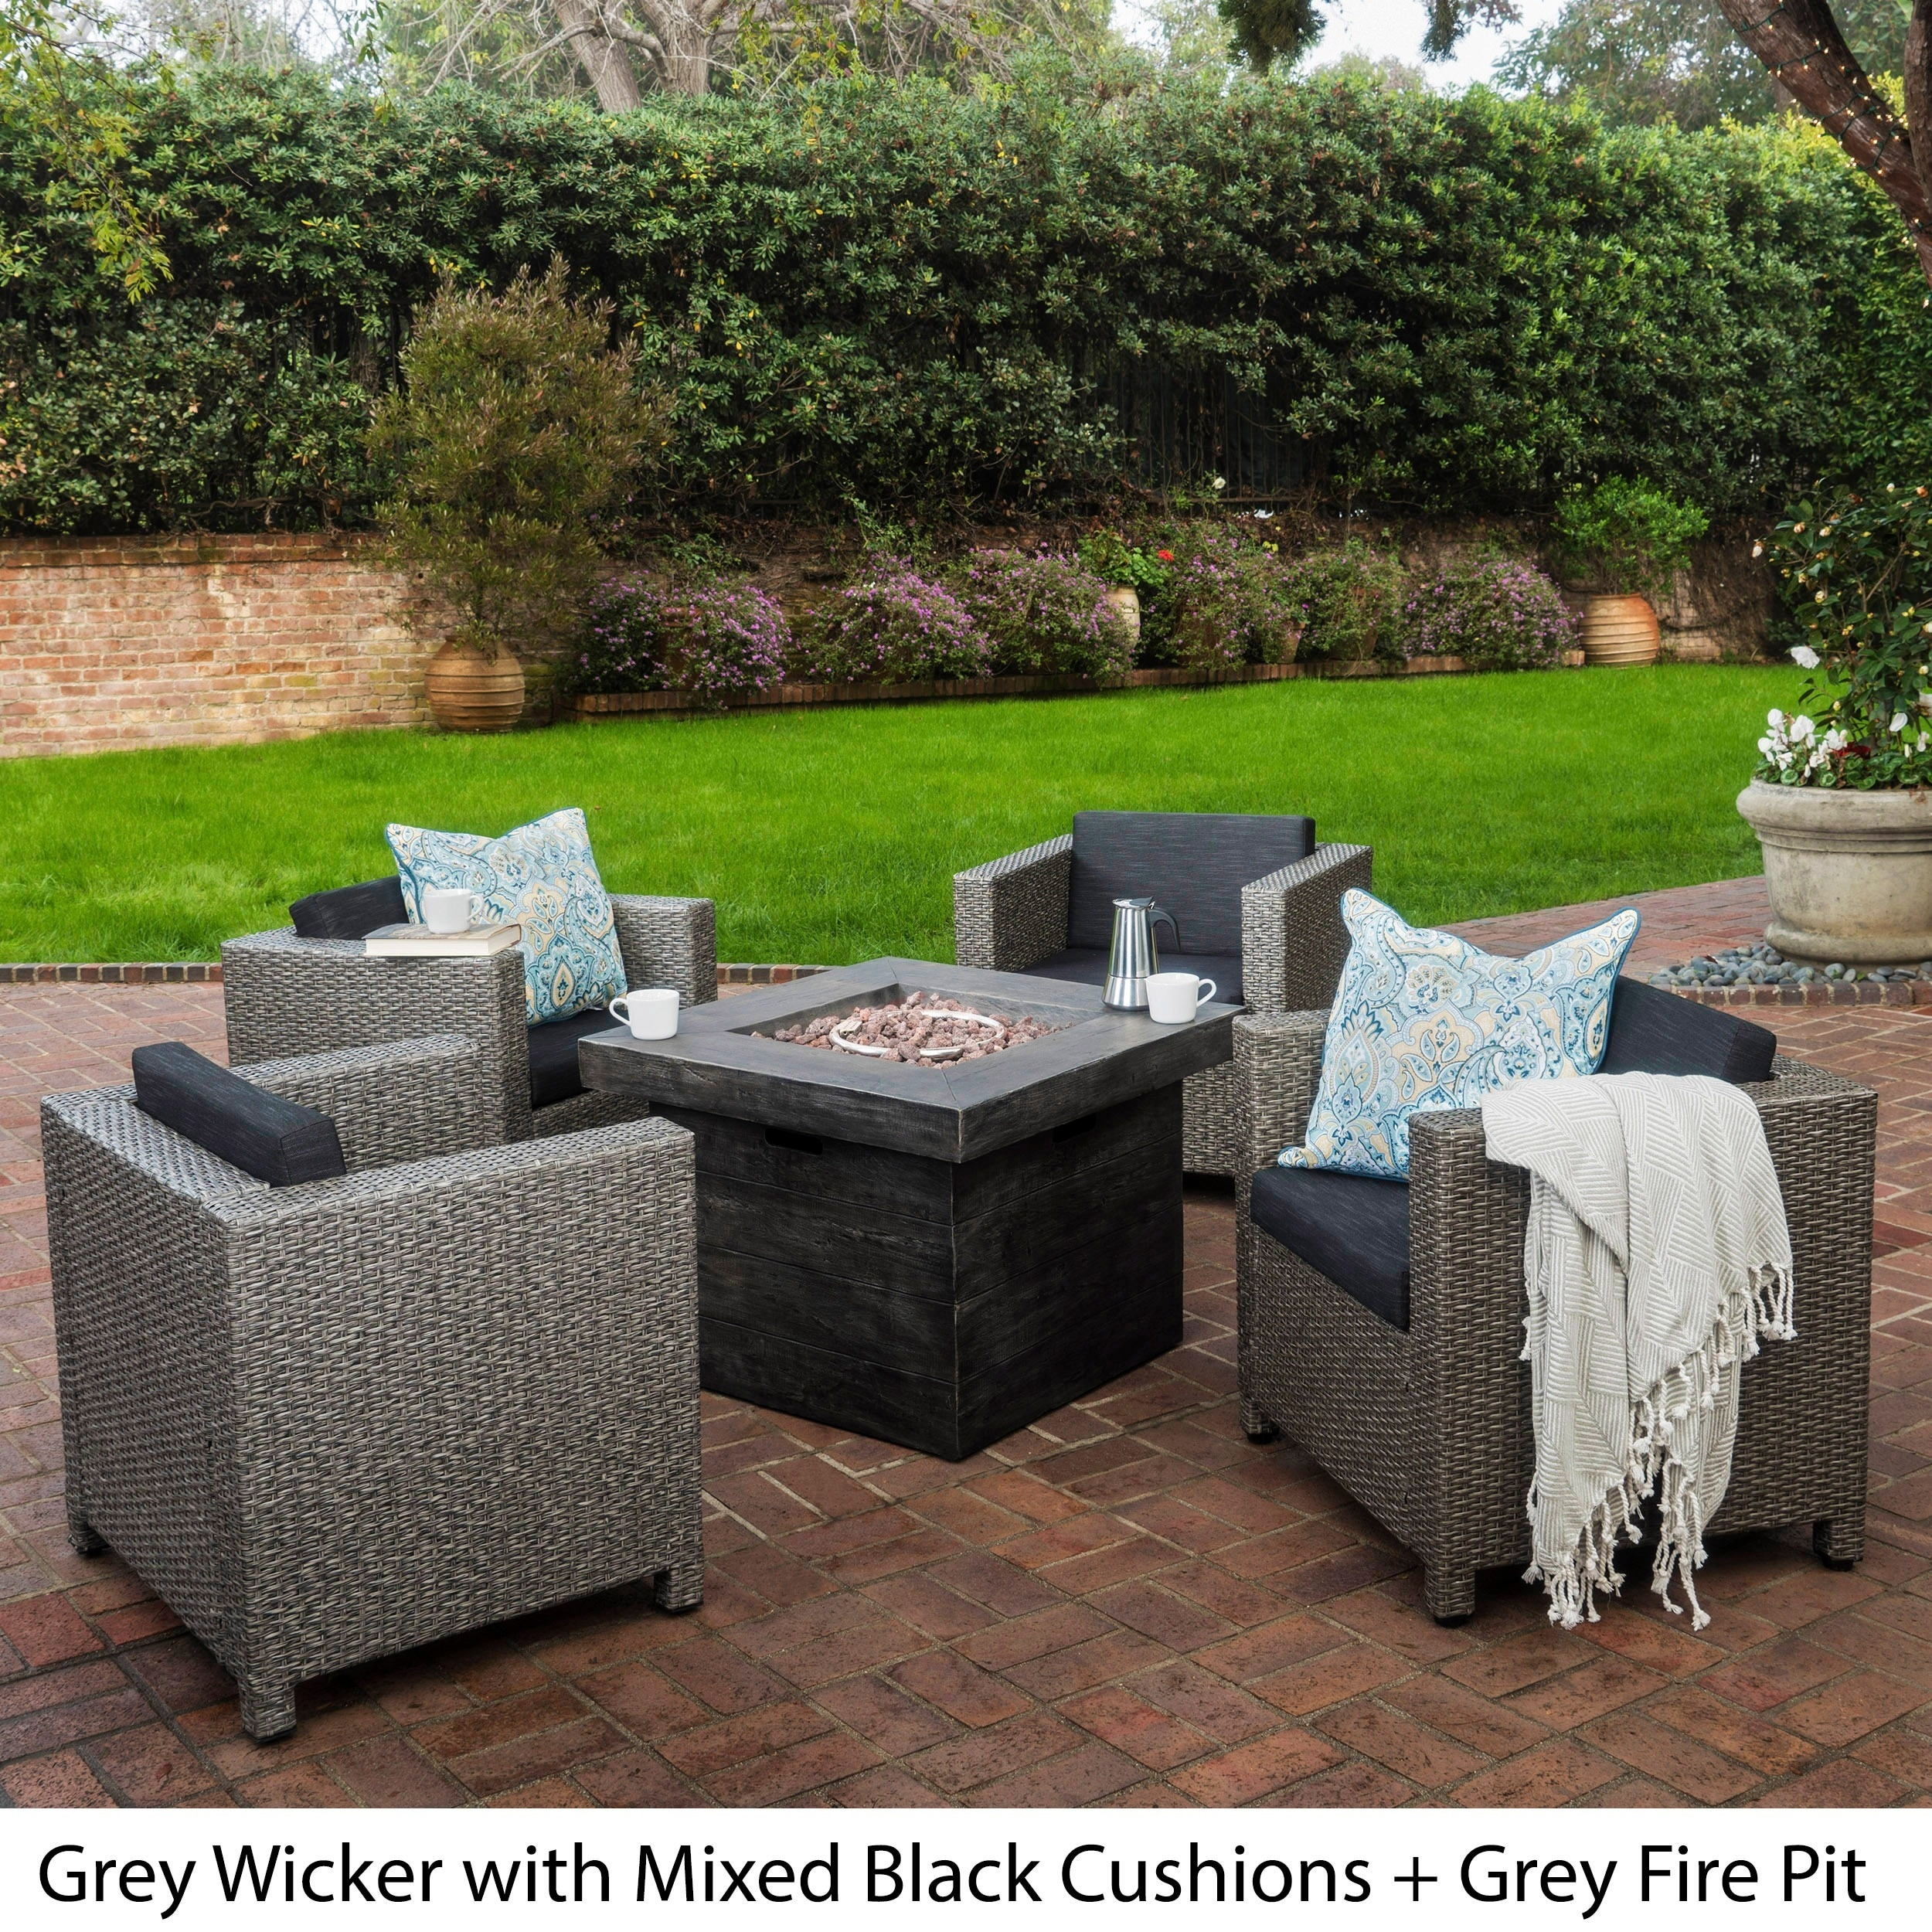 Puerta Outdoor 4-piece Wicker Chair Set with Square Firep...